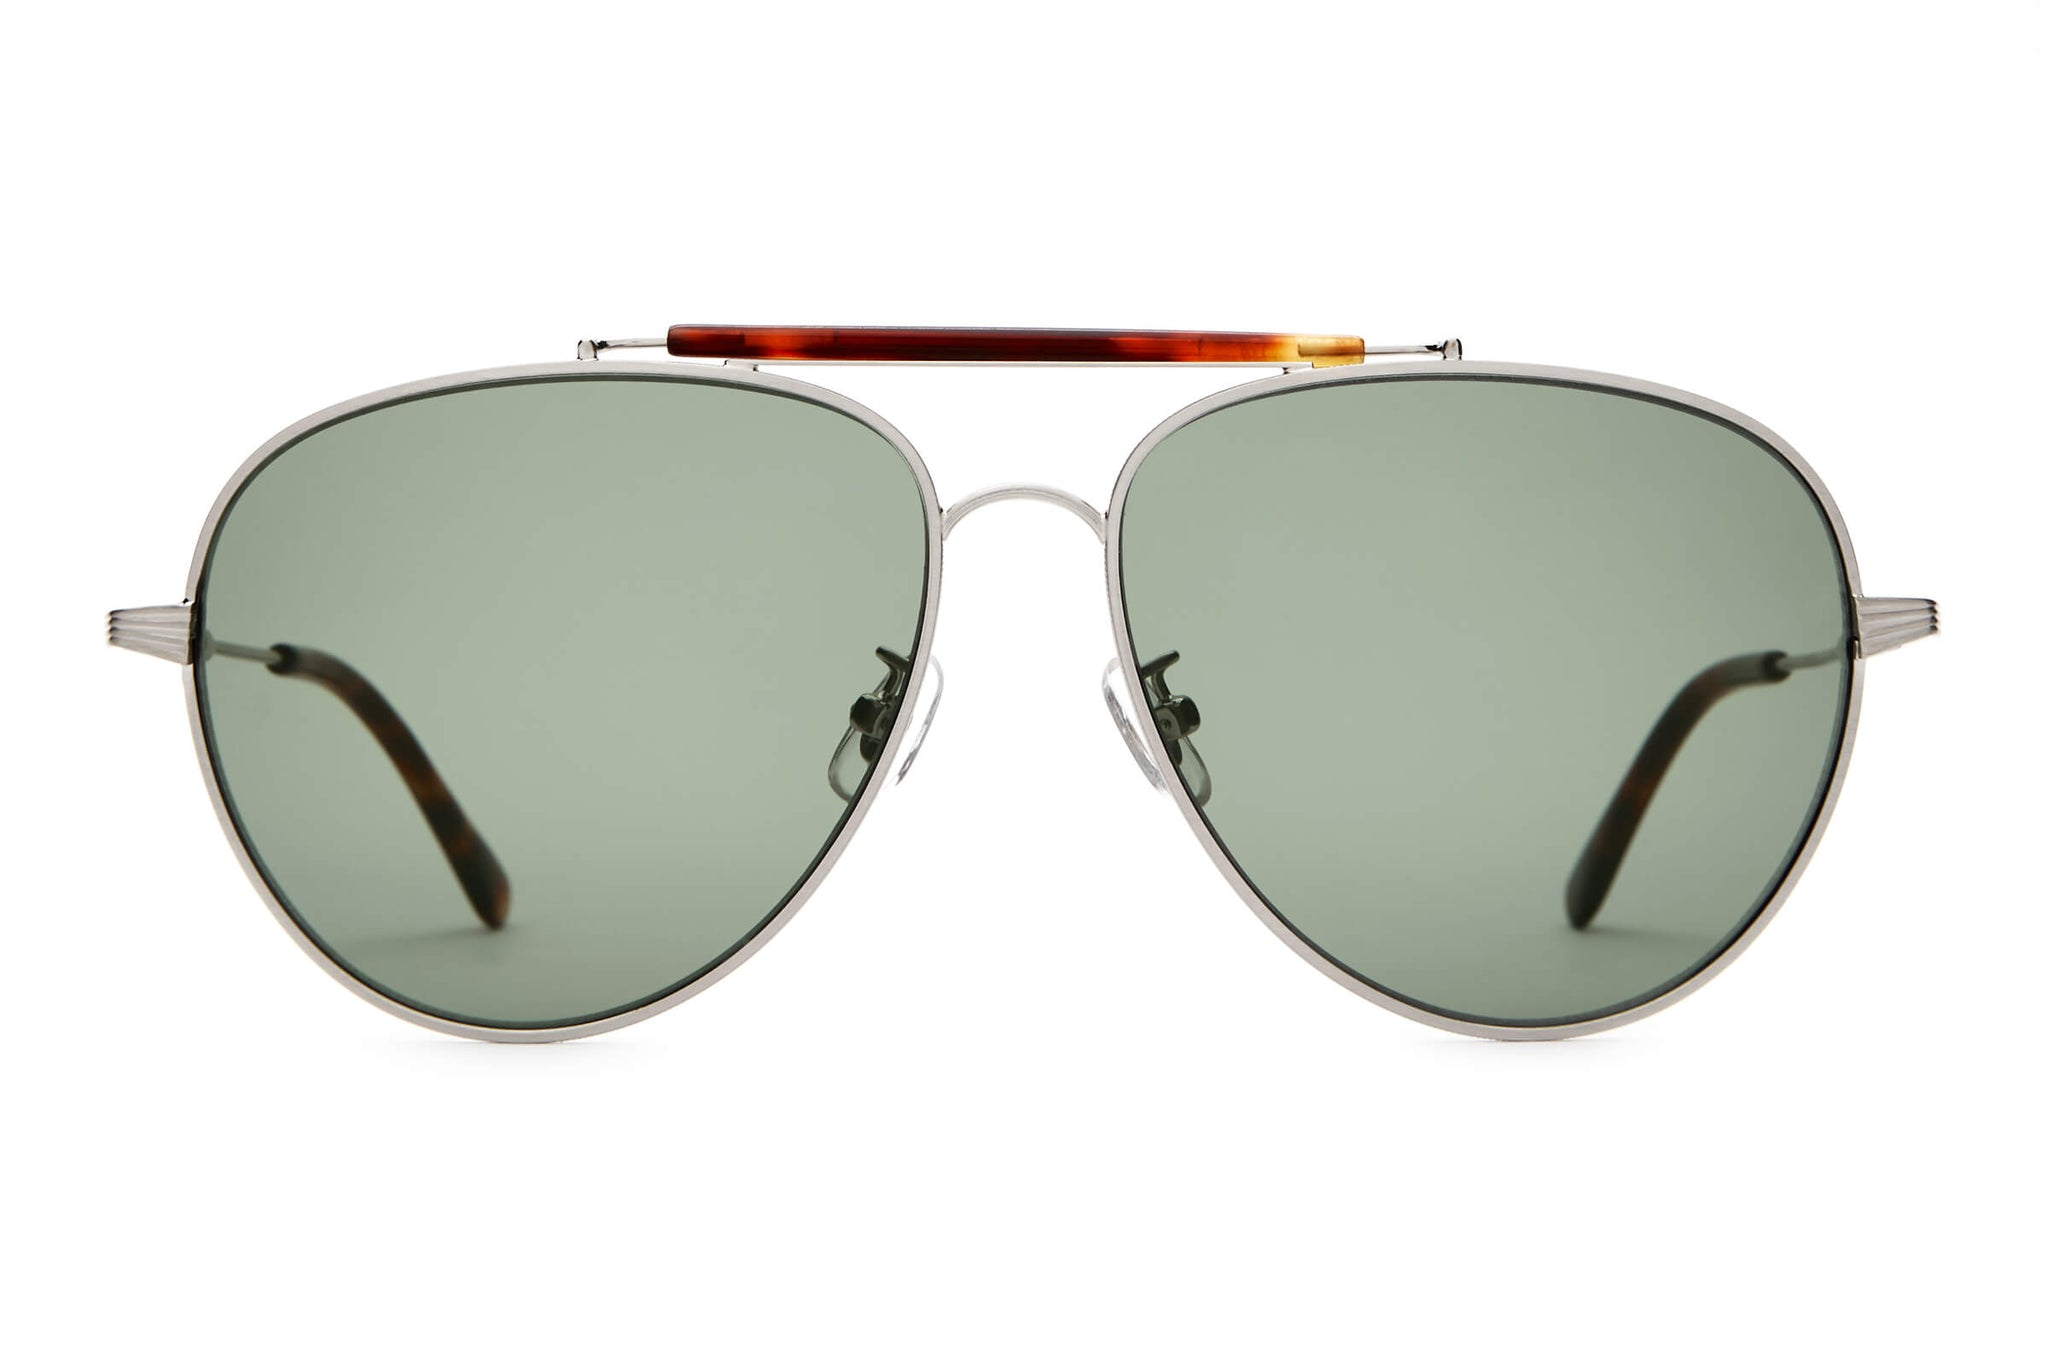 The Road Crue - Brushed Silver & Dark Tortoise - / Vintage Green - Sunglasses